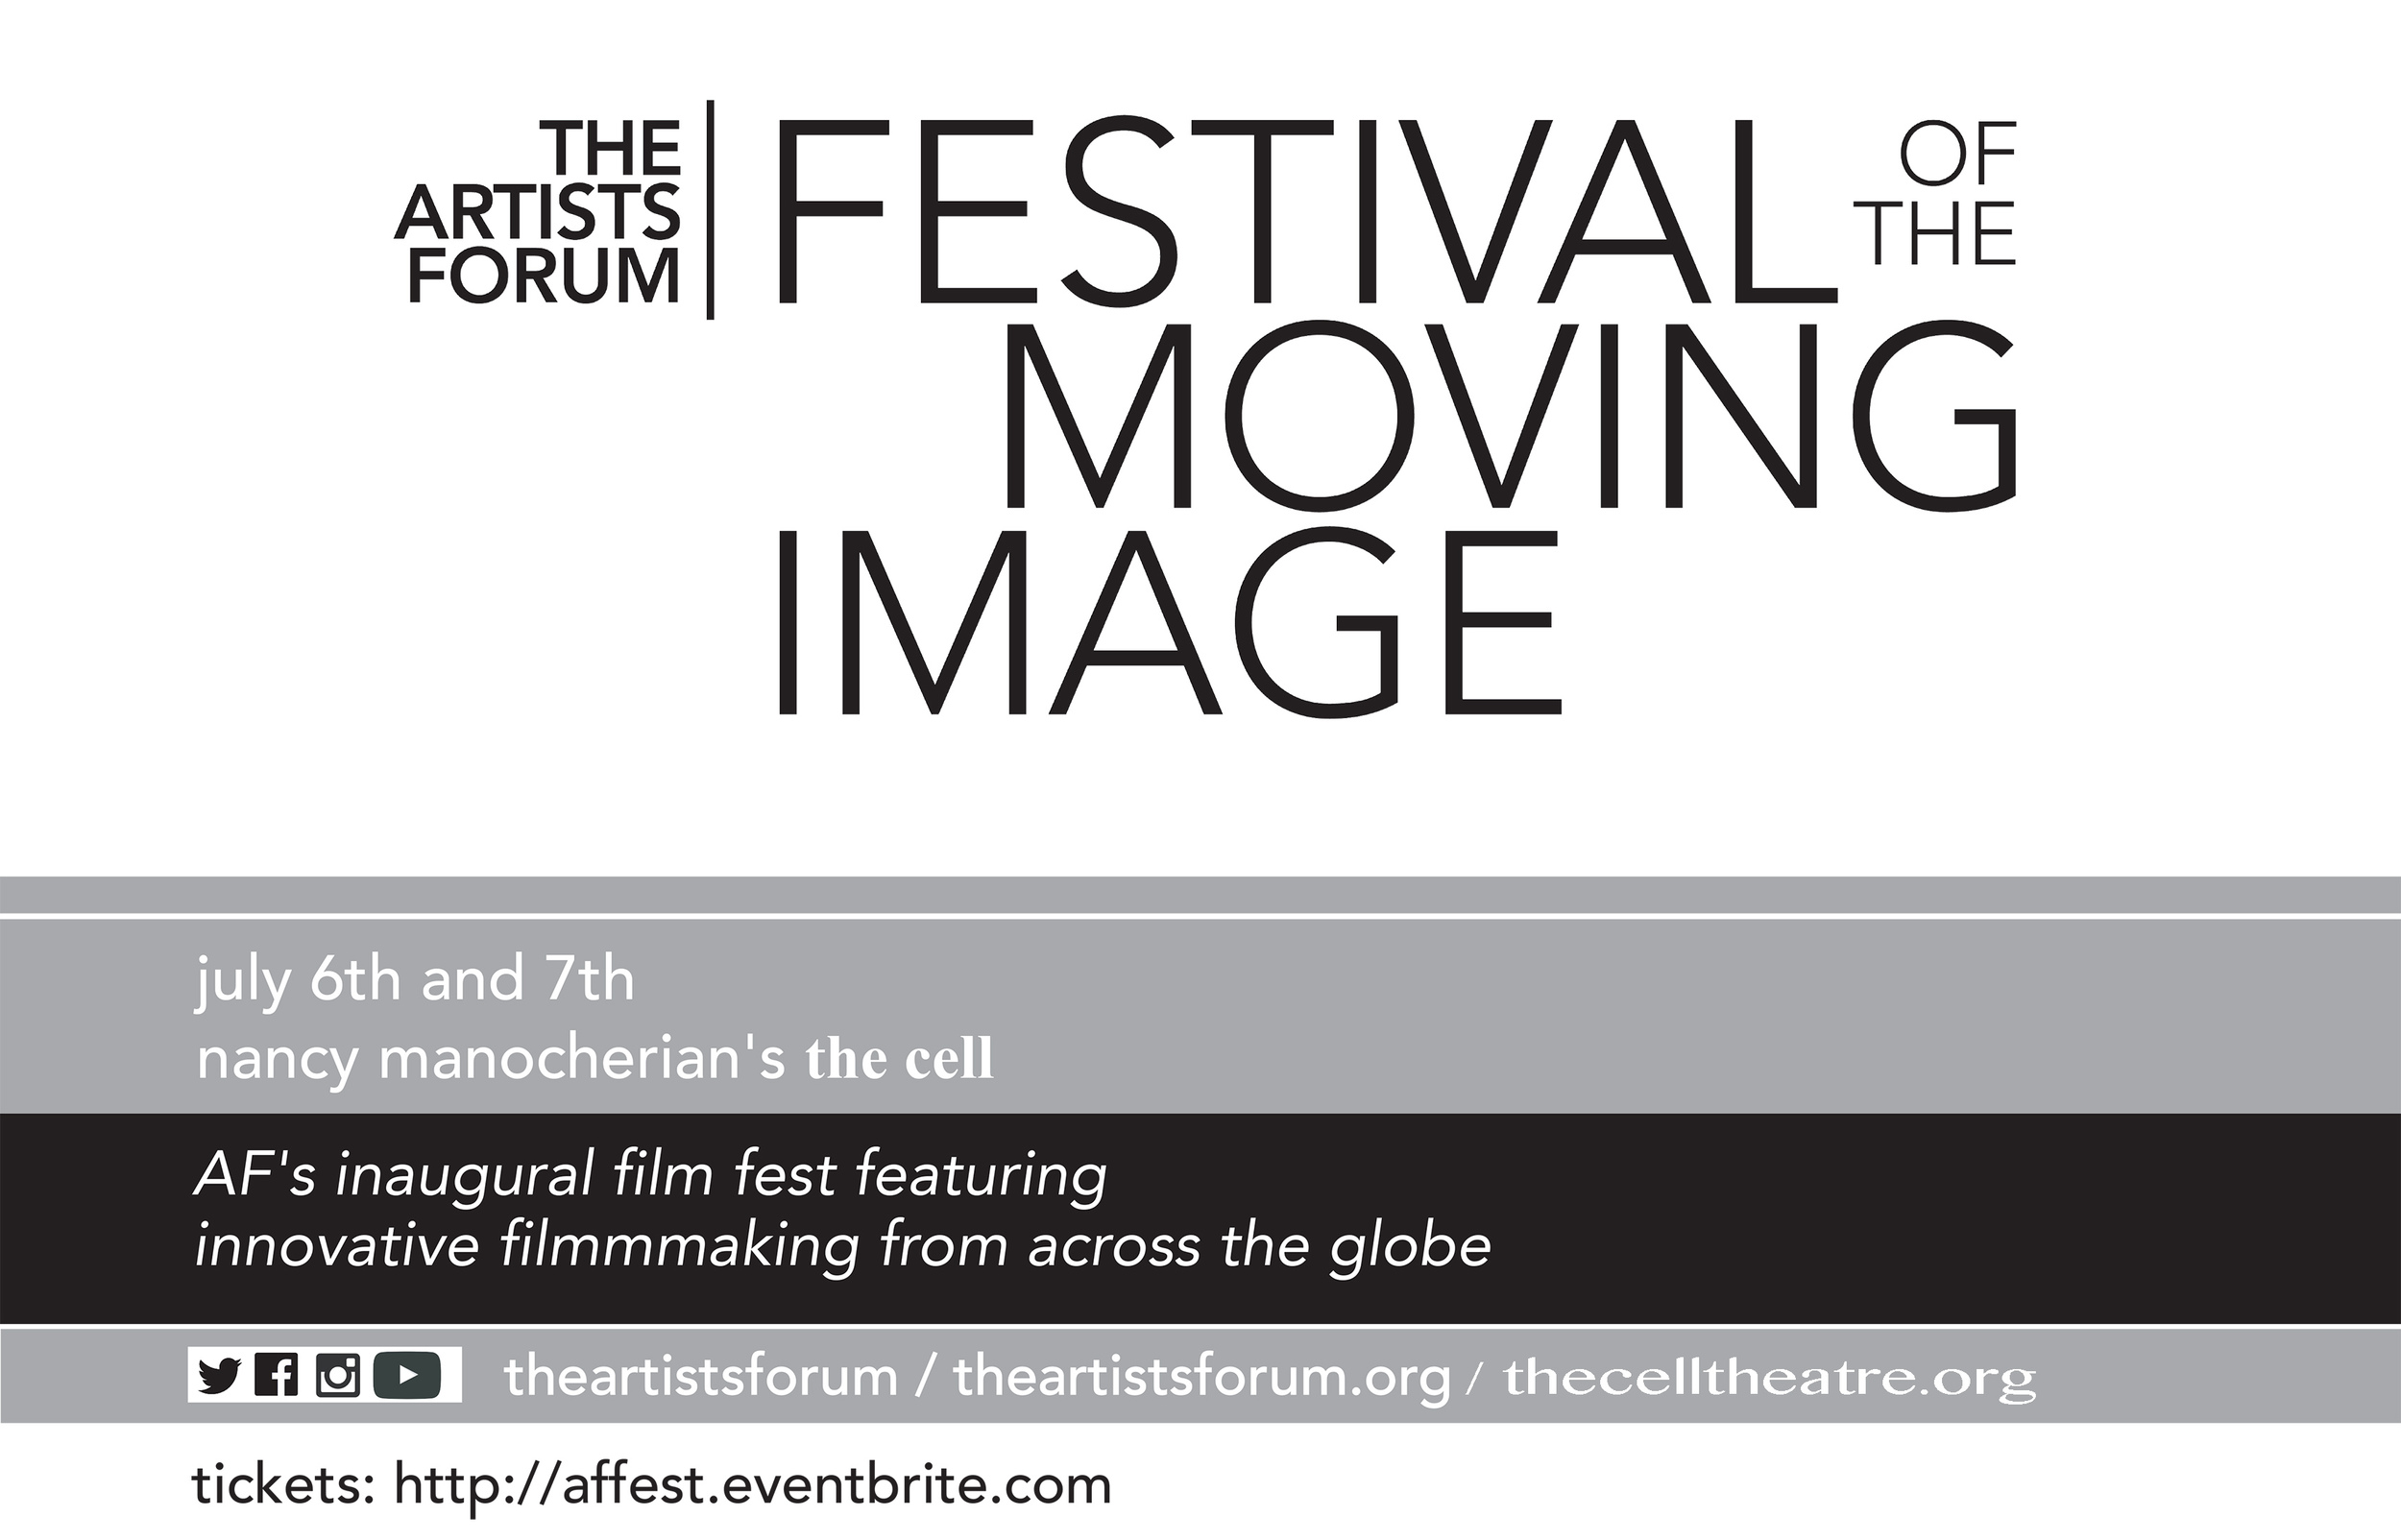 THE ARTISTS FORUM , a NY State 501(c)3 not-for-profit arts service organization specializing in media, events, and juried competitions for artists, is proud to announce the inaugural screenings for  THE ARTISTS FORUM FESTIVAL OF THE MOVING IMAGE (AF-FMI).   This years  AF-FMI features 23 international short film selections from multiple disciplines: narrative, experimental, documentary, animation, and music video works. Additional festival highlights include an opening night filmmakers' reception, an awards ceremony, and our closing night party.  This two day event will be held July 6th and 7th from 7PM to 10:30PM each nite at nancy manocherian's the cell.   For tickets and our list of films, please visit: http://affest.eventbrite.com   For more information on  THE ARTISTS FORUM , please visit our main website at: http://www.theartistsforum.org